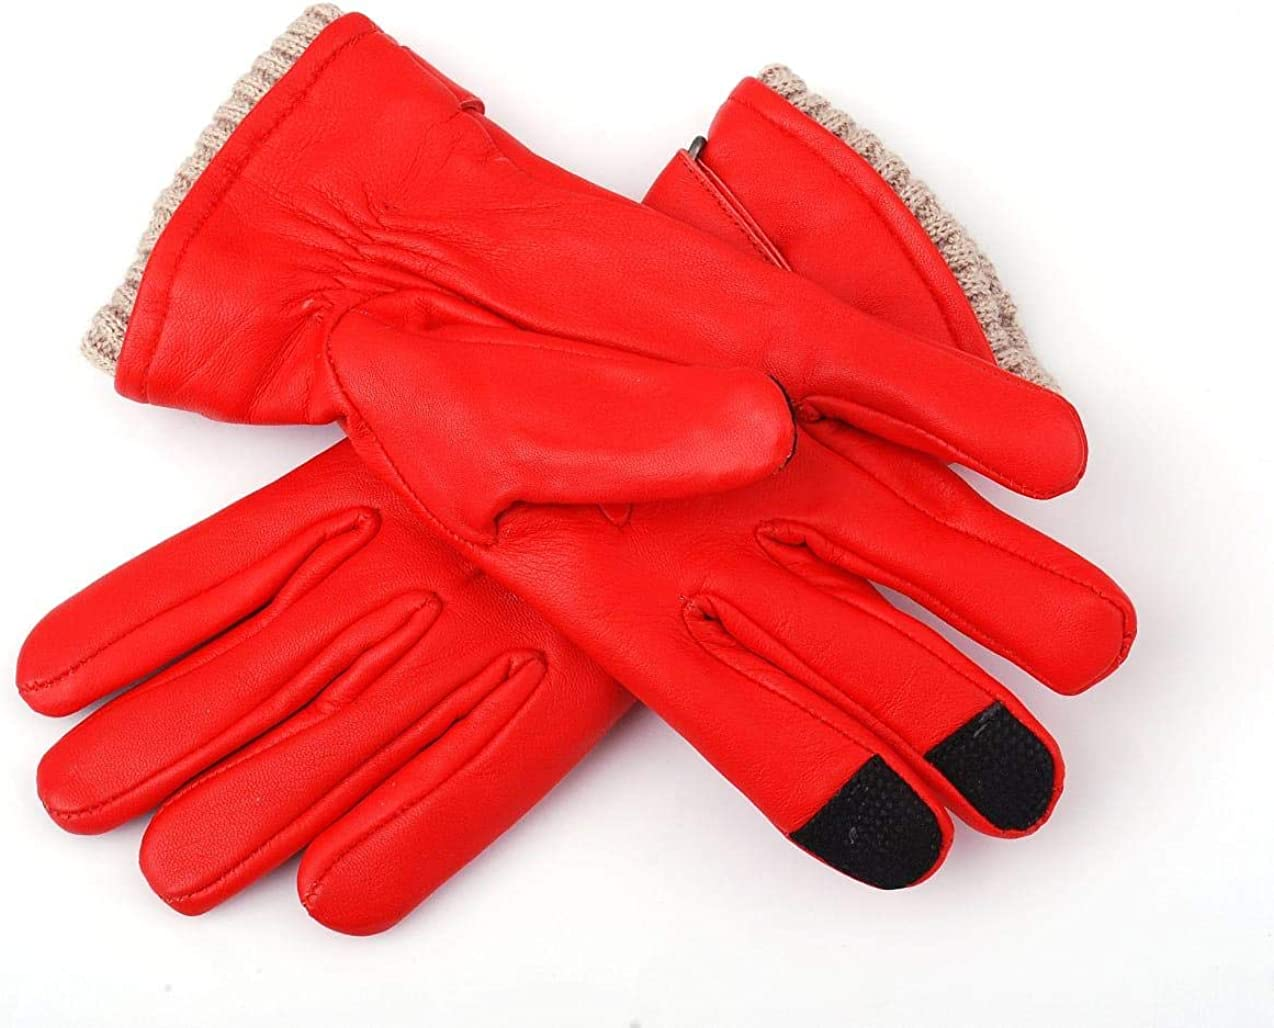 Women Genuine Sheep Leather Winter Dress Driving Riding Texting Gloves with Wool and Fleece Lining (Red, Large)